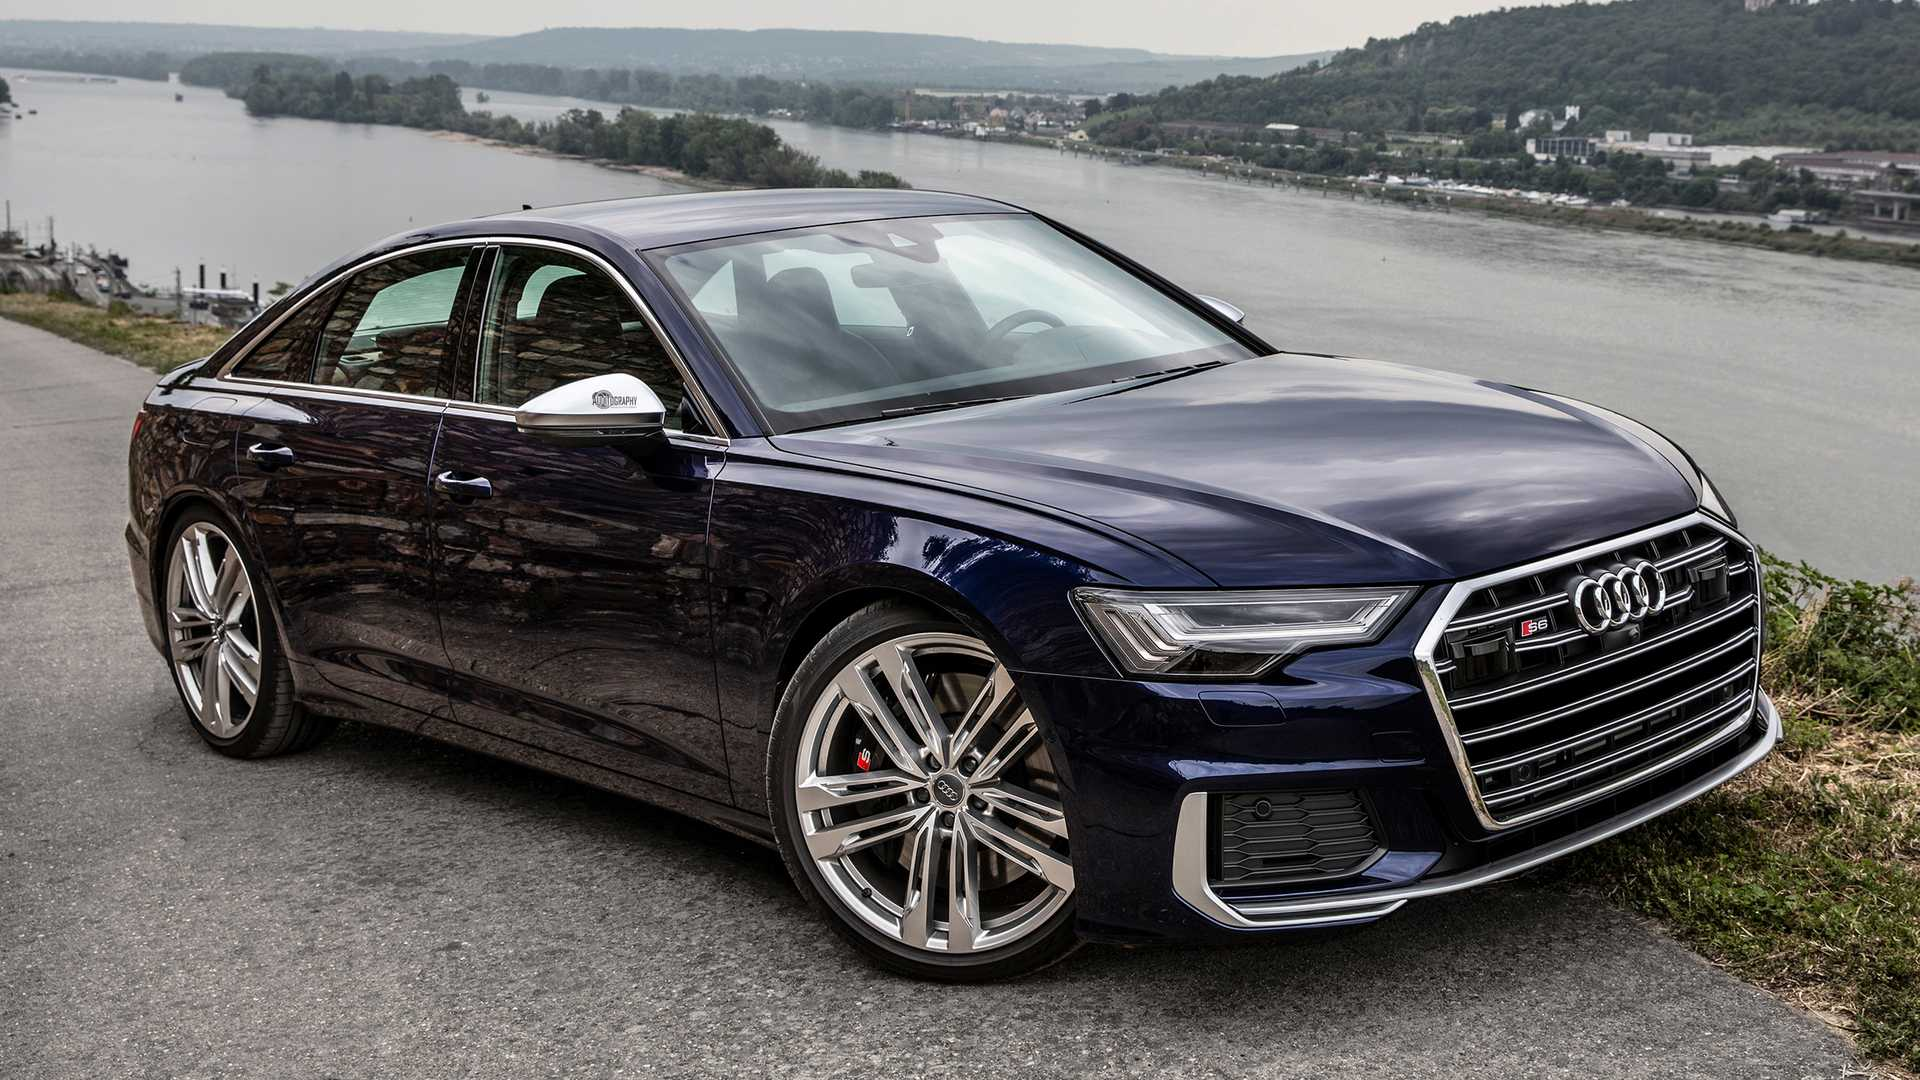 2020 Audi S6 Review.2020 Audi S6 Sedan Shows It S The Whole Package On Video